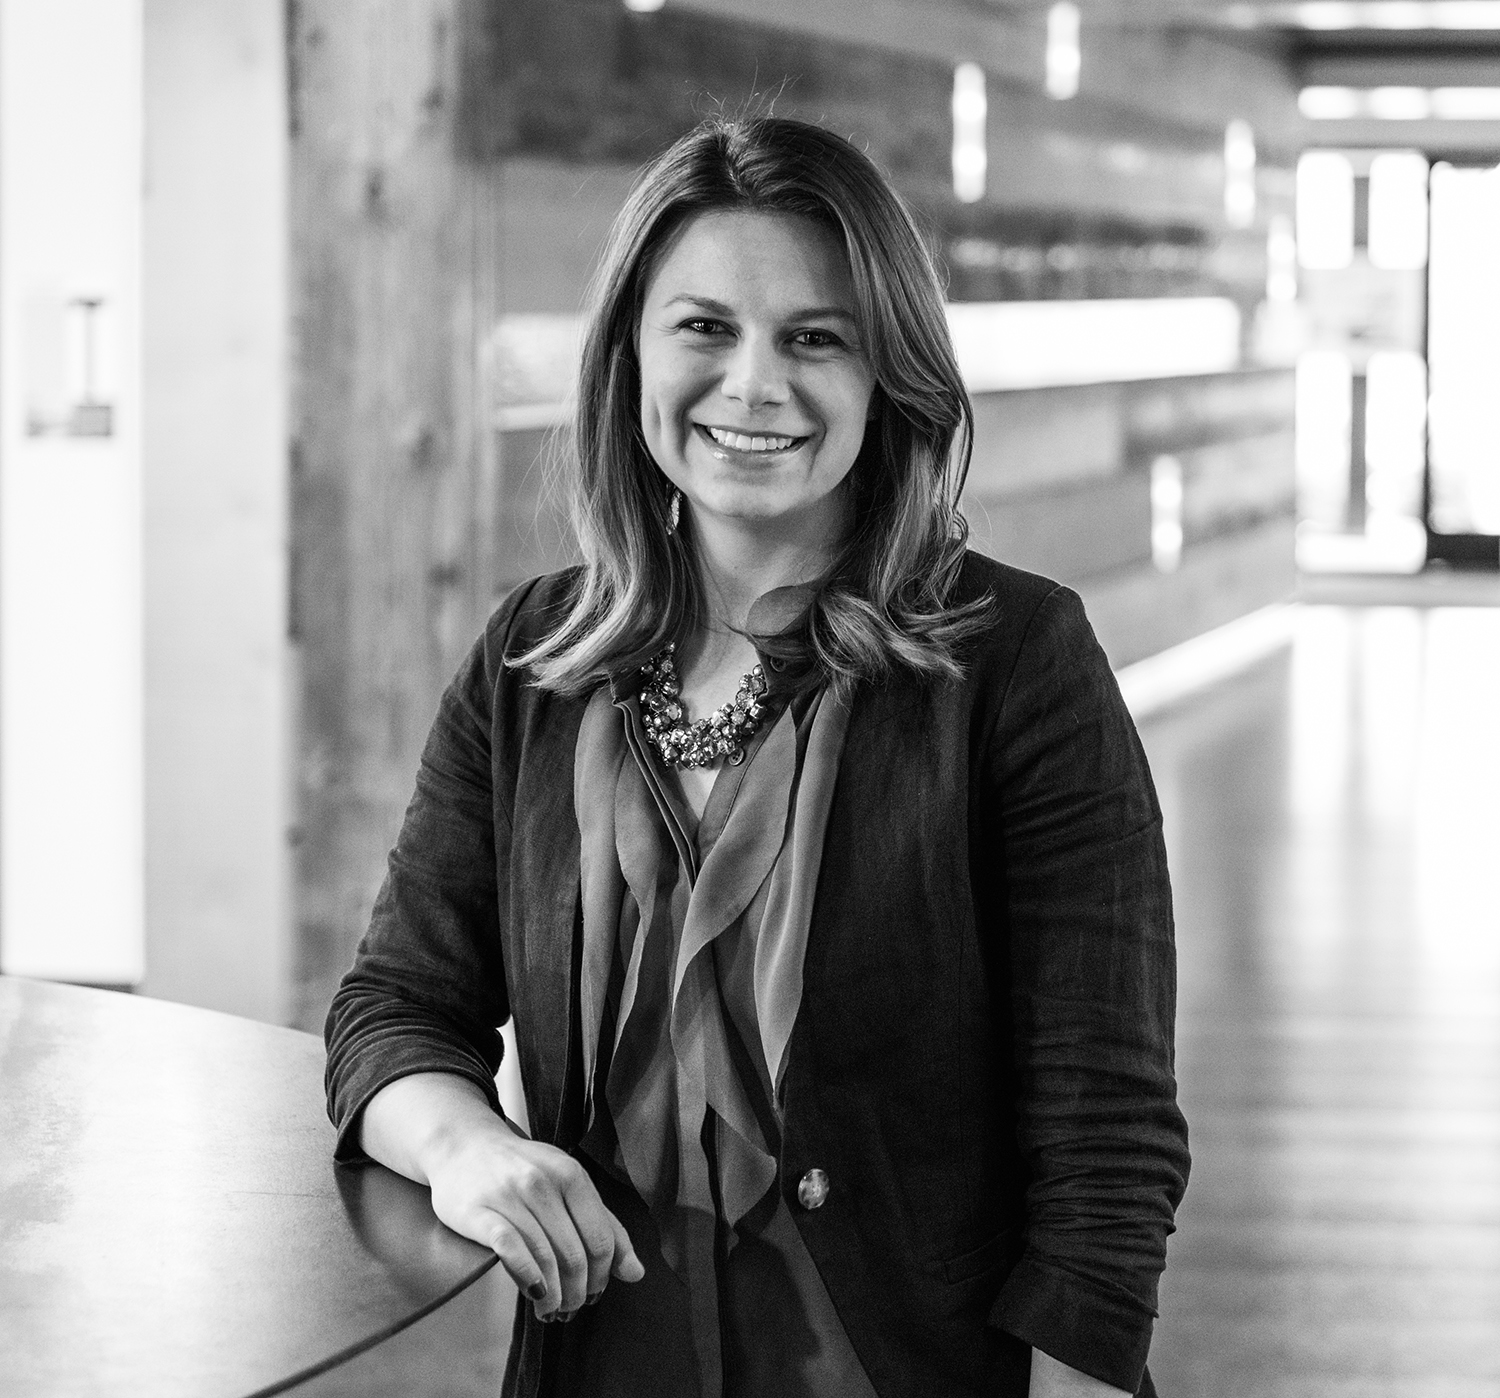 Rice Fergus Miller 's Kristen Linn is blazing trails as the lead architect on the new building that Vibe is proud to call home.